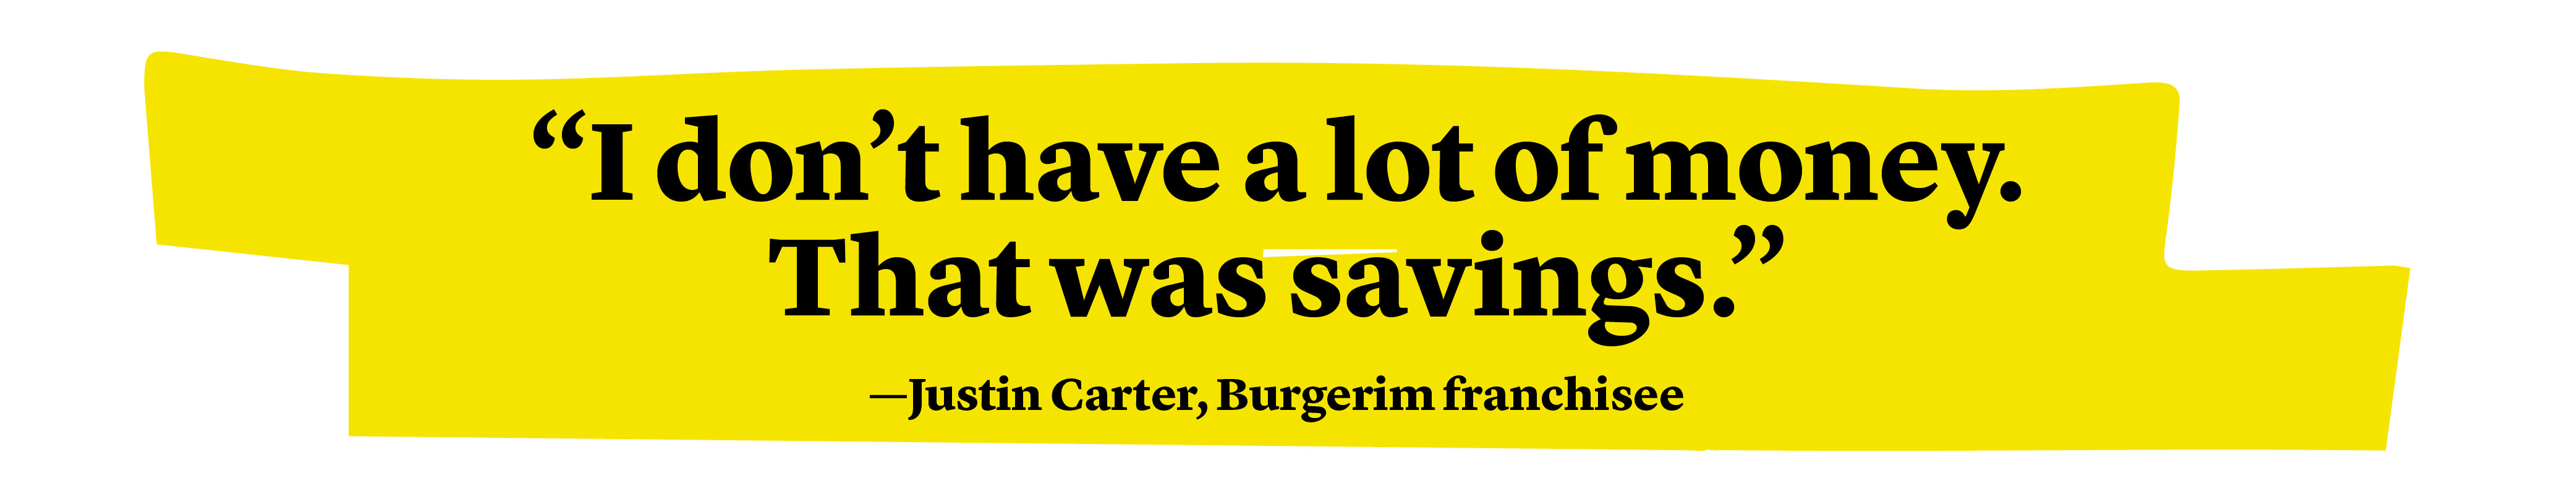 Justin Carter quote